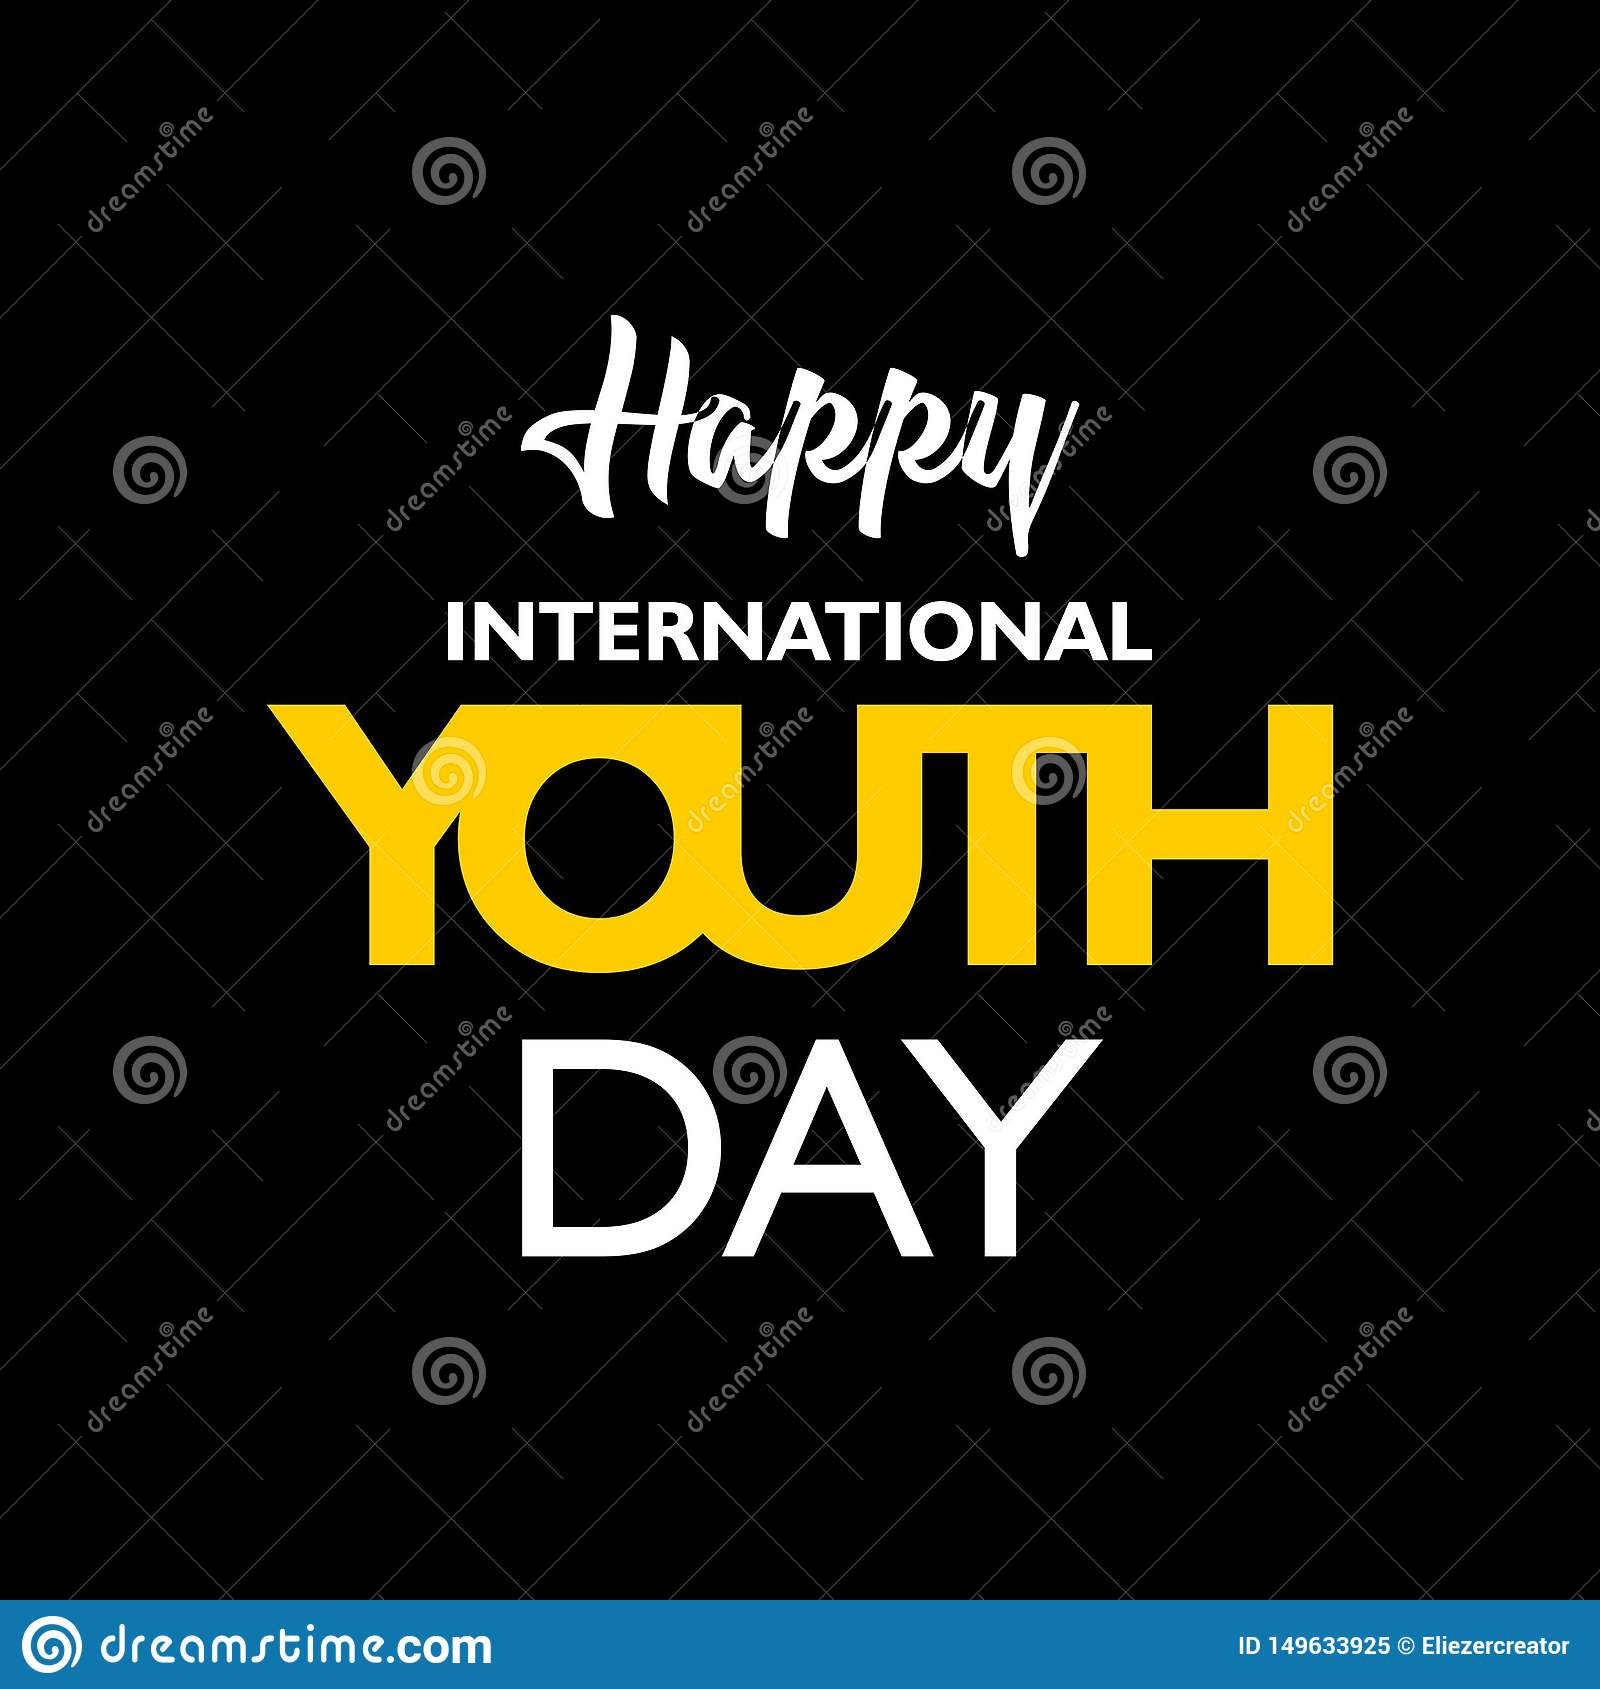 international youth day stock vector illustration of